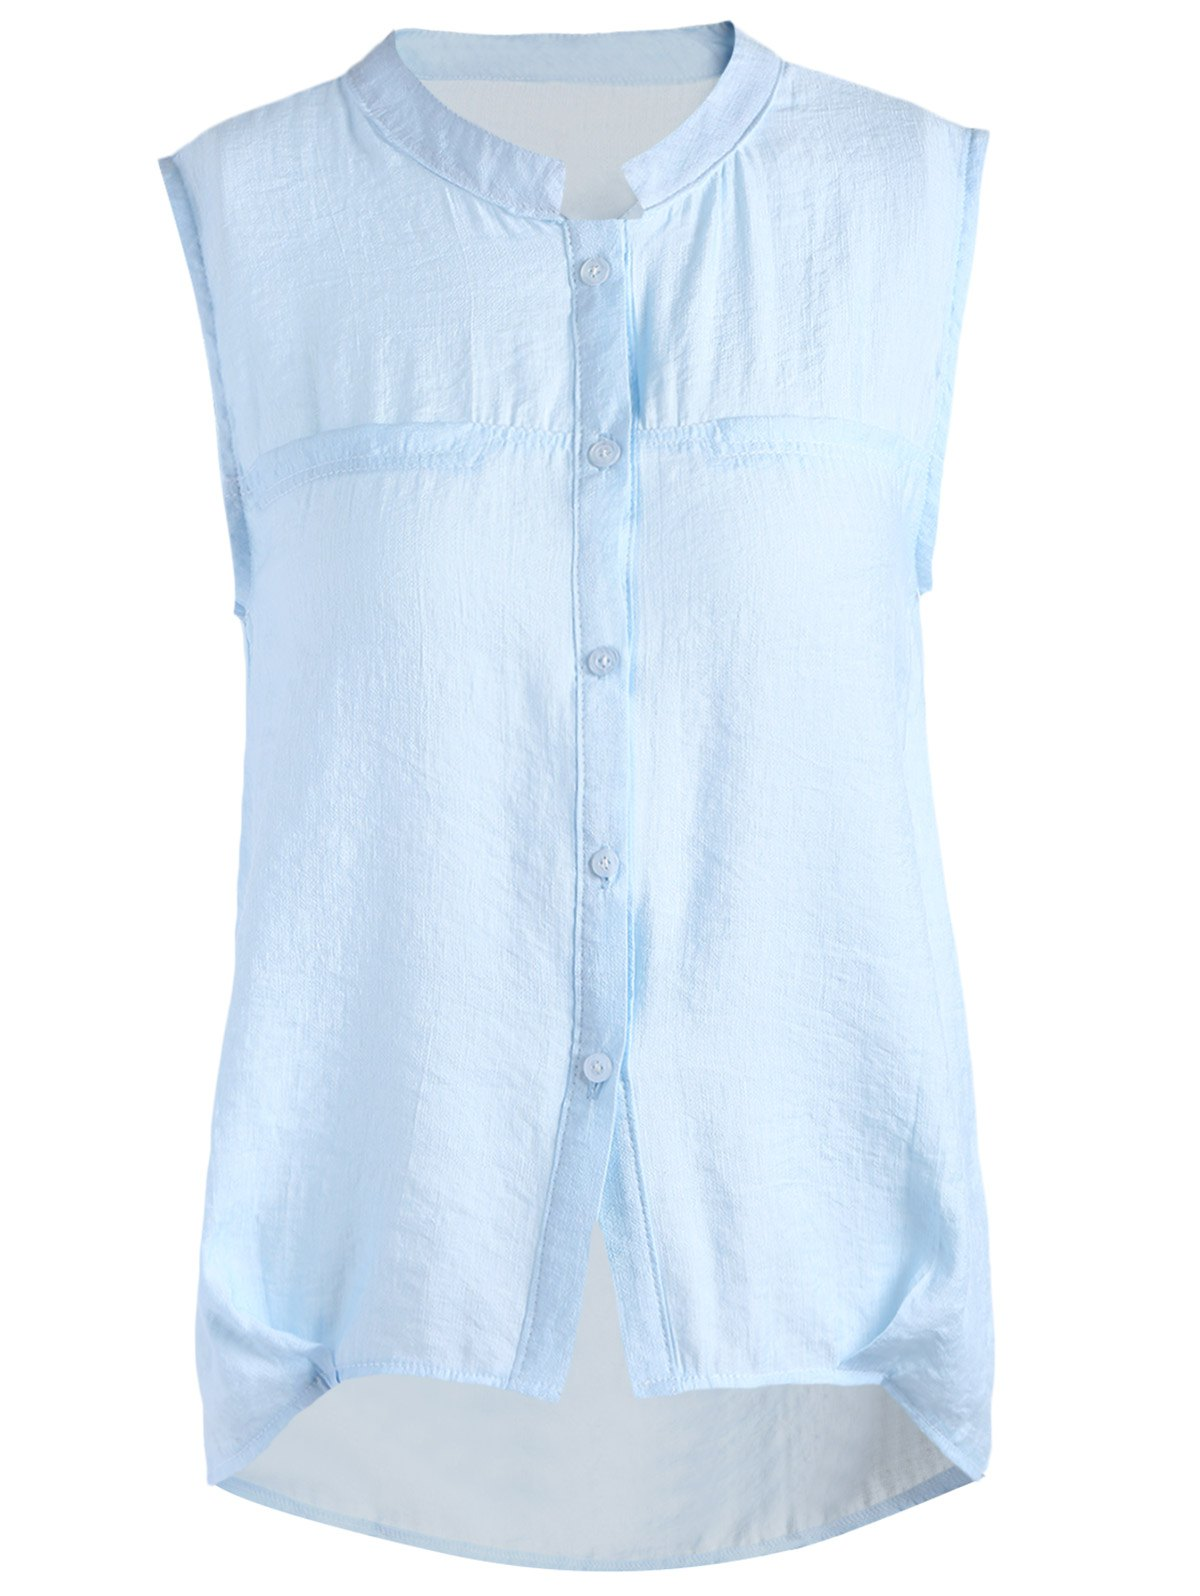 Casual Stand Collar Sleeveless Back Ruffled Women's Solid Color Shirt - LIGHT BLUE ONE SIZE(FIT SIZE XS TO M)